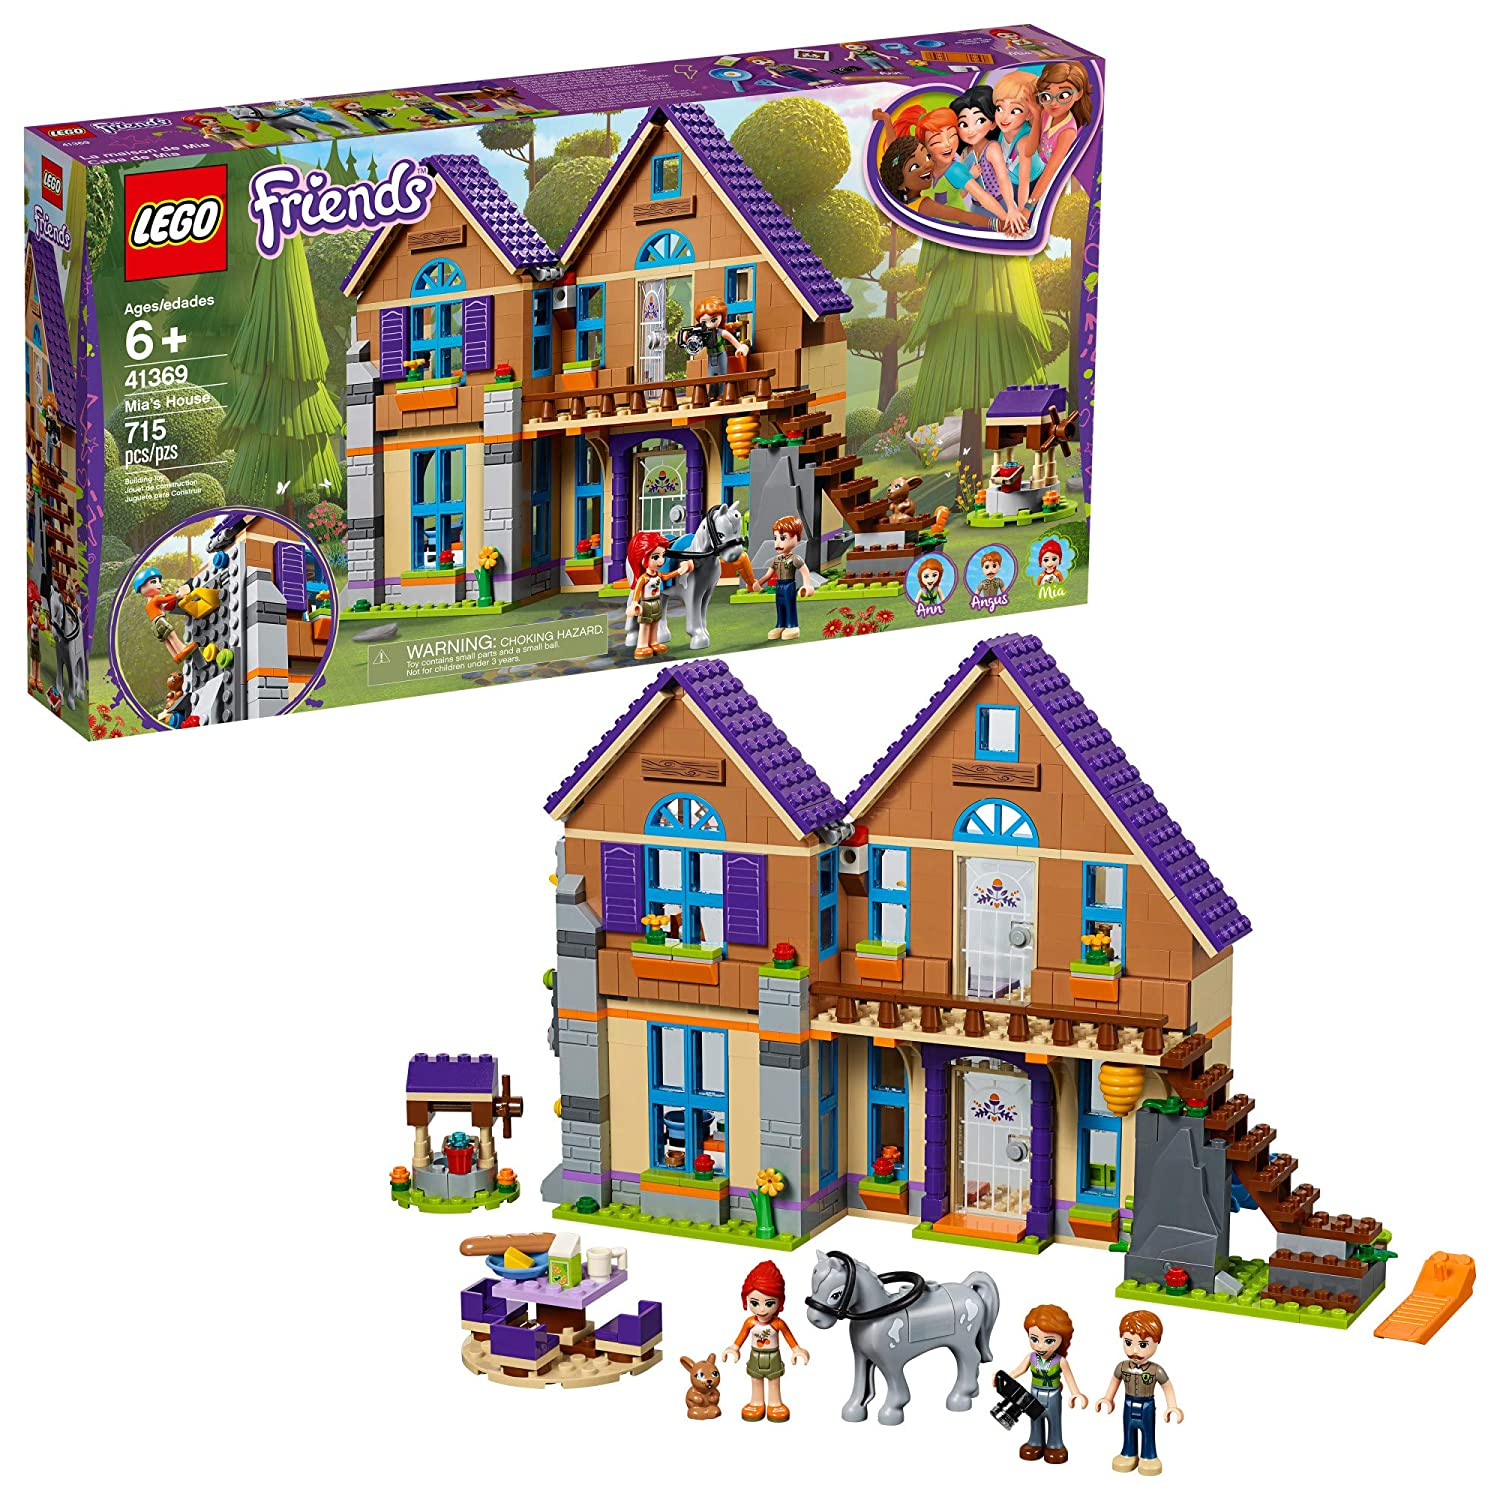 LEGO Friends Mia's House 41369 Building Kit , New 2019 (715 Piece)